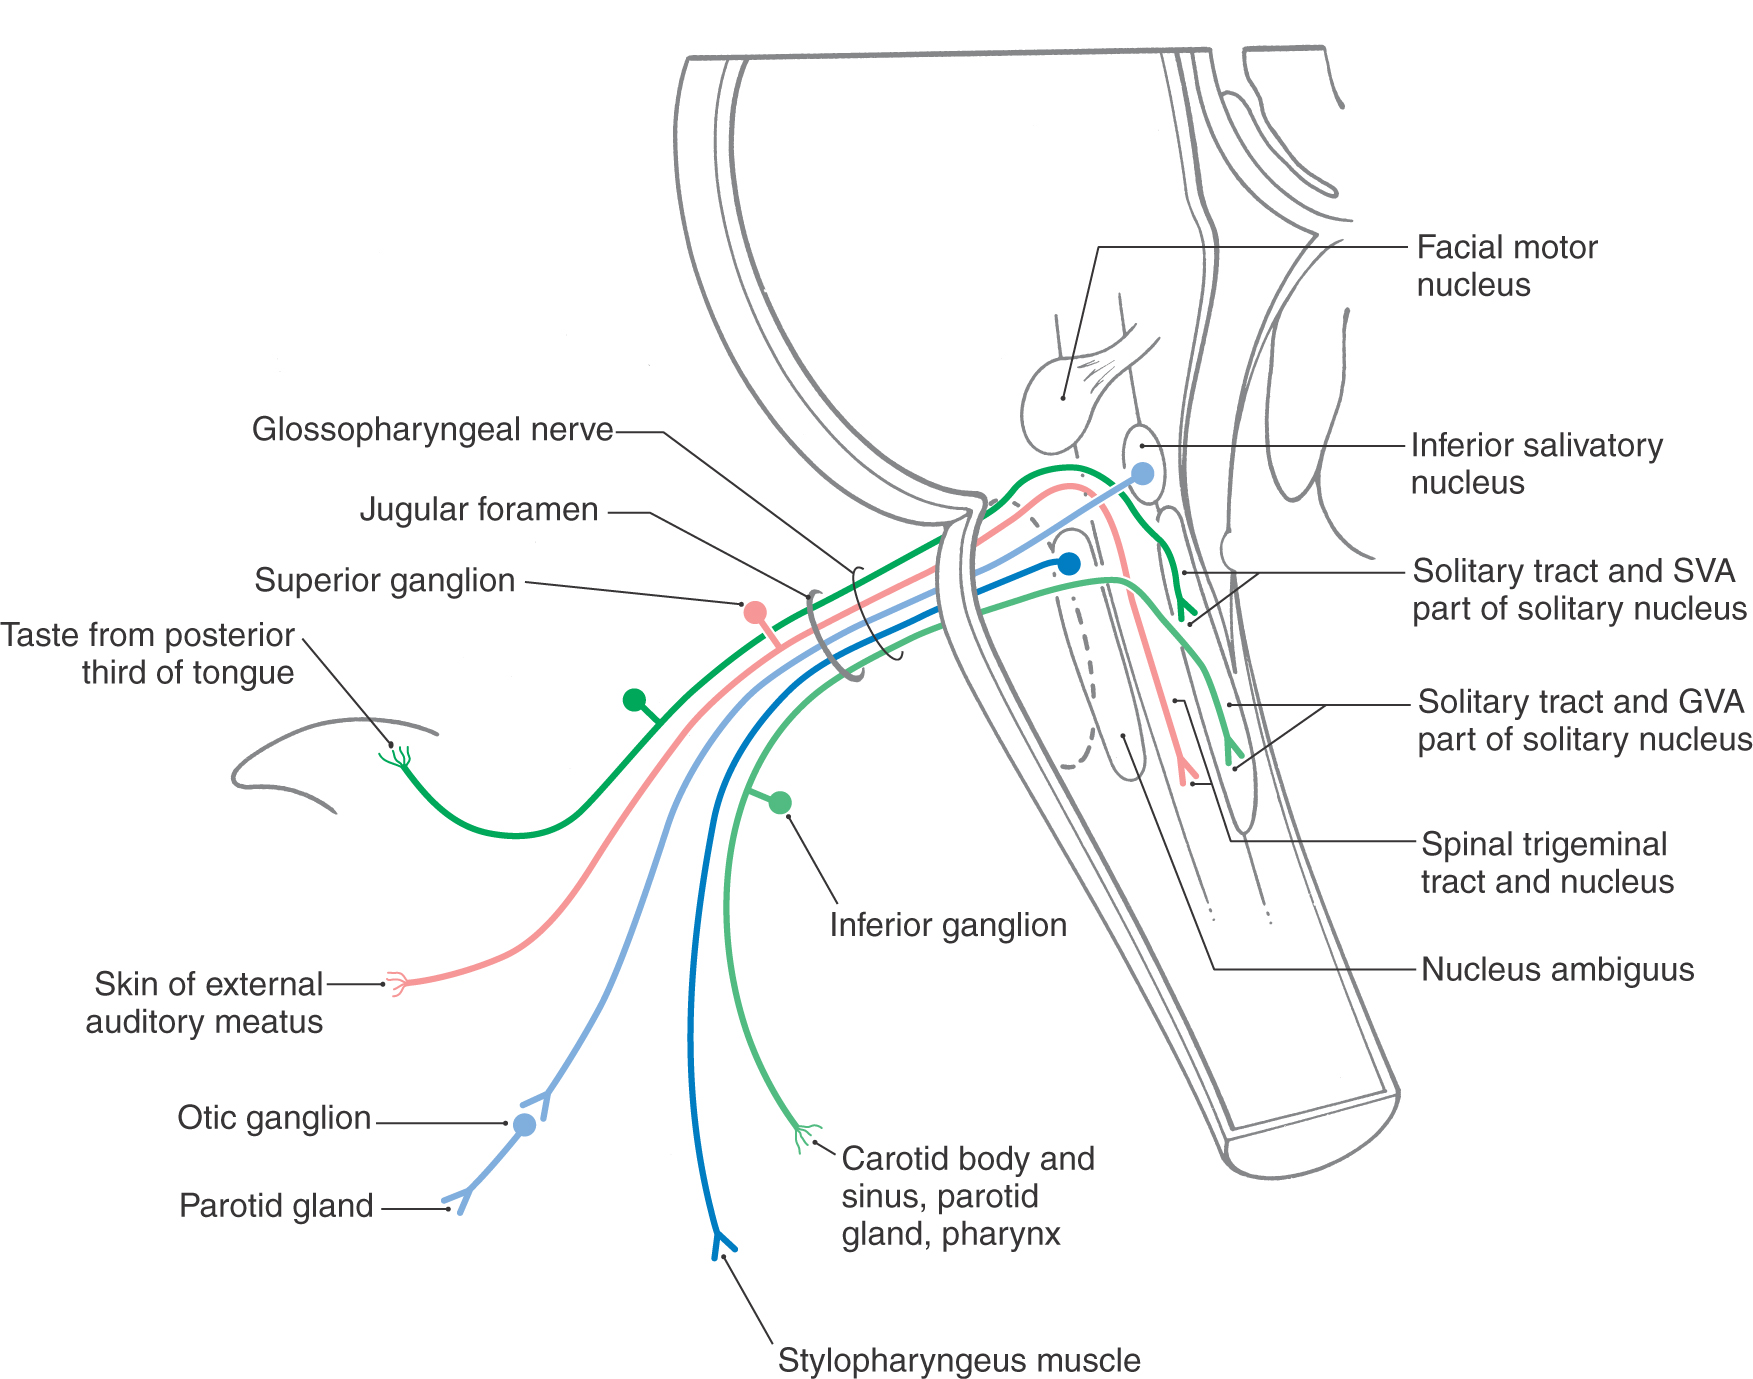 A Synopsis of Cranial Nerves of the Brainstem | Clinical Gate